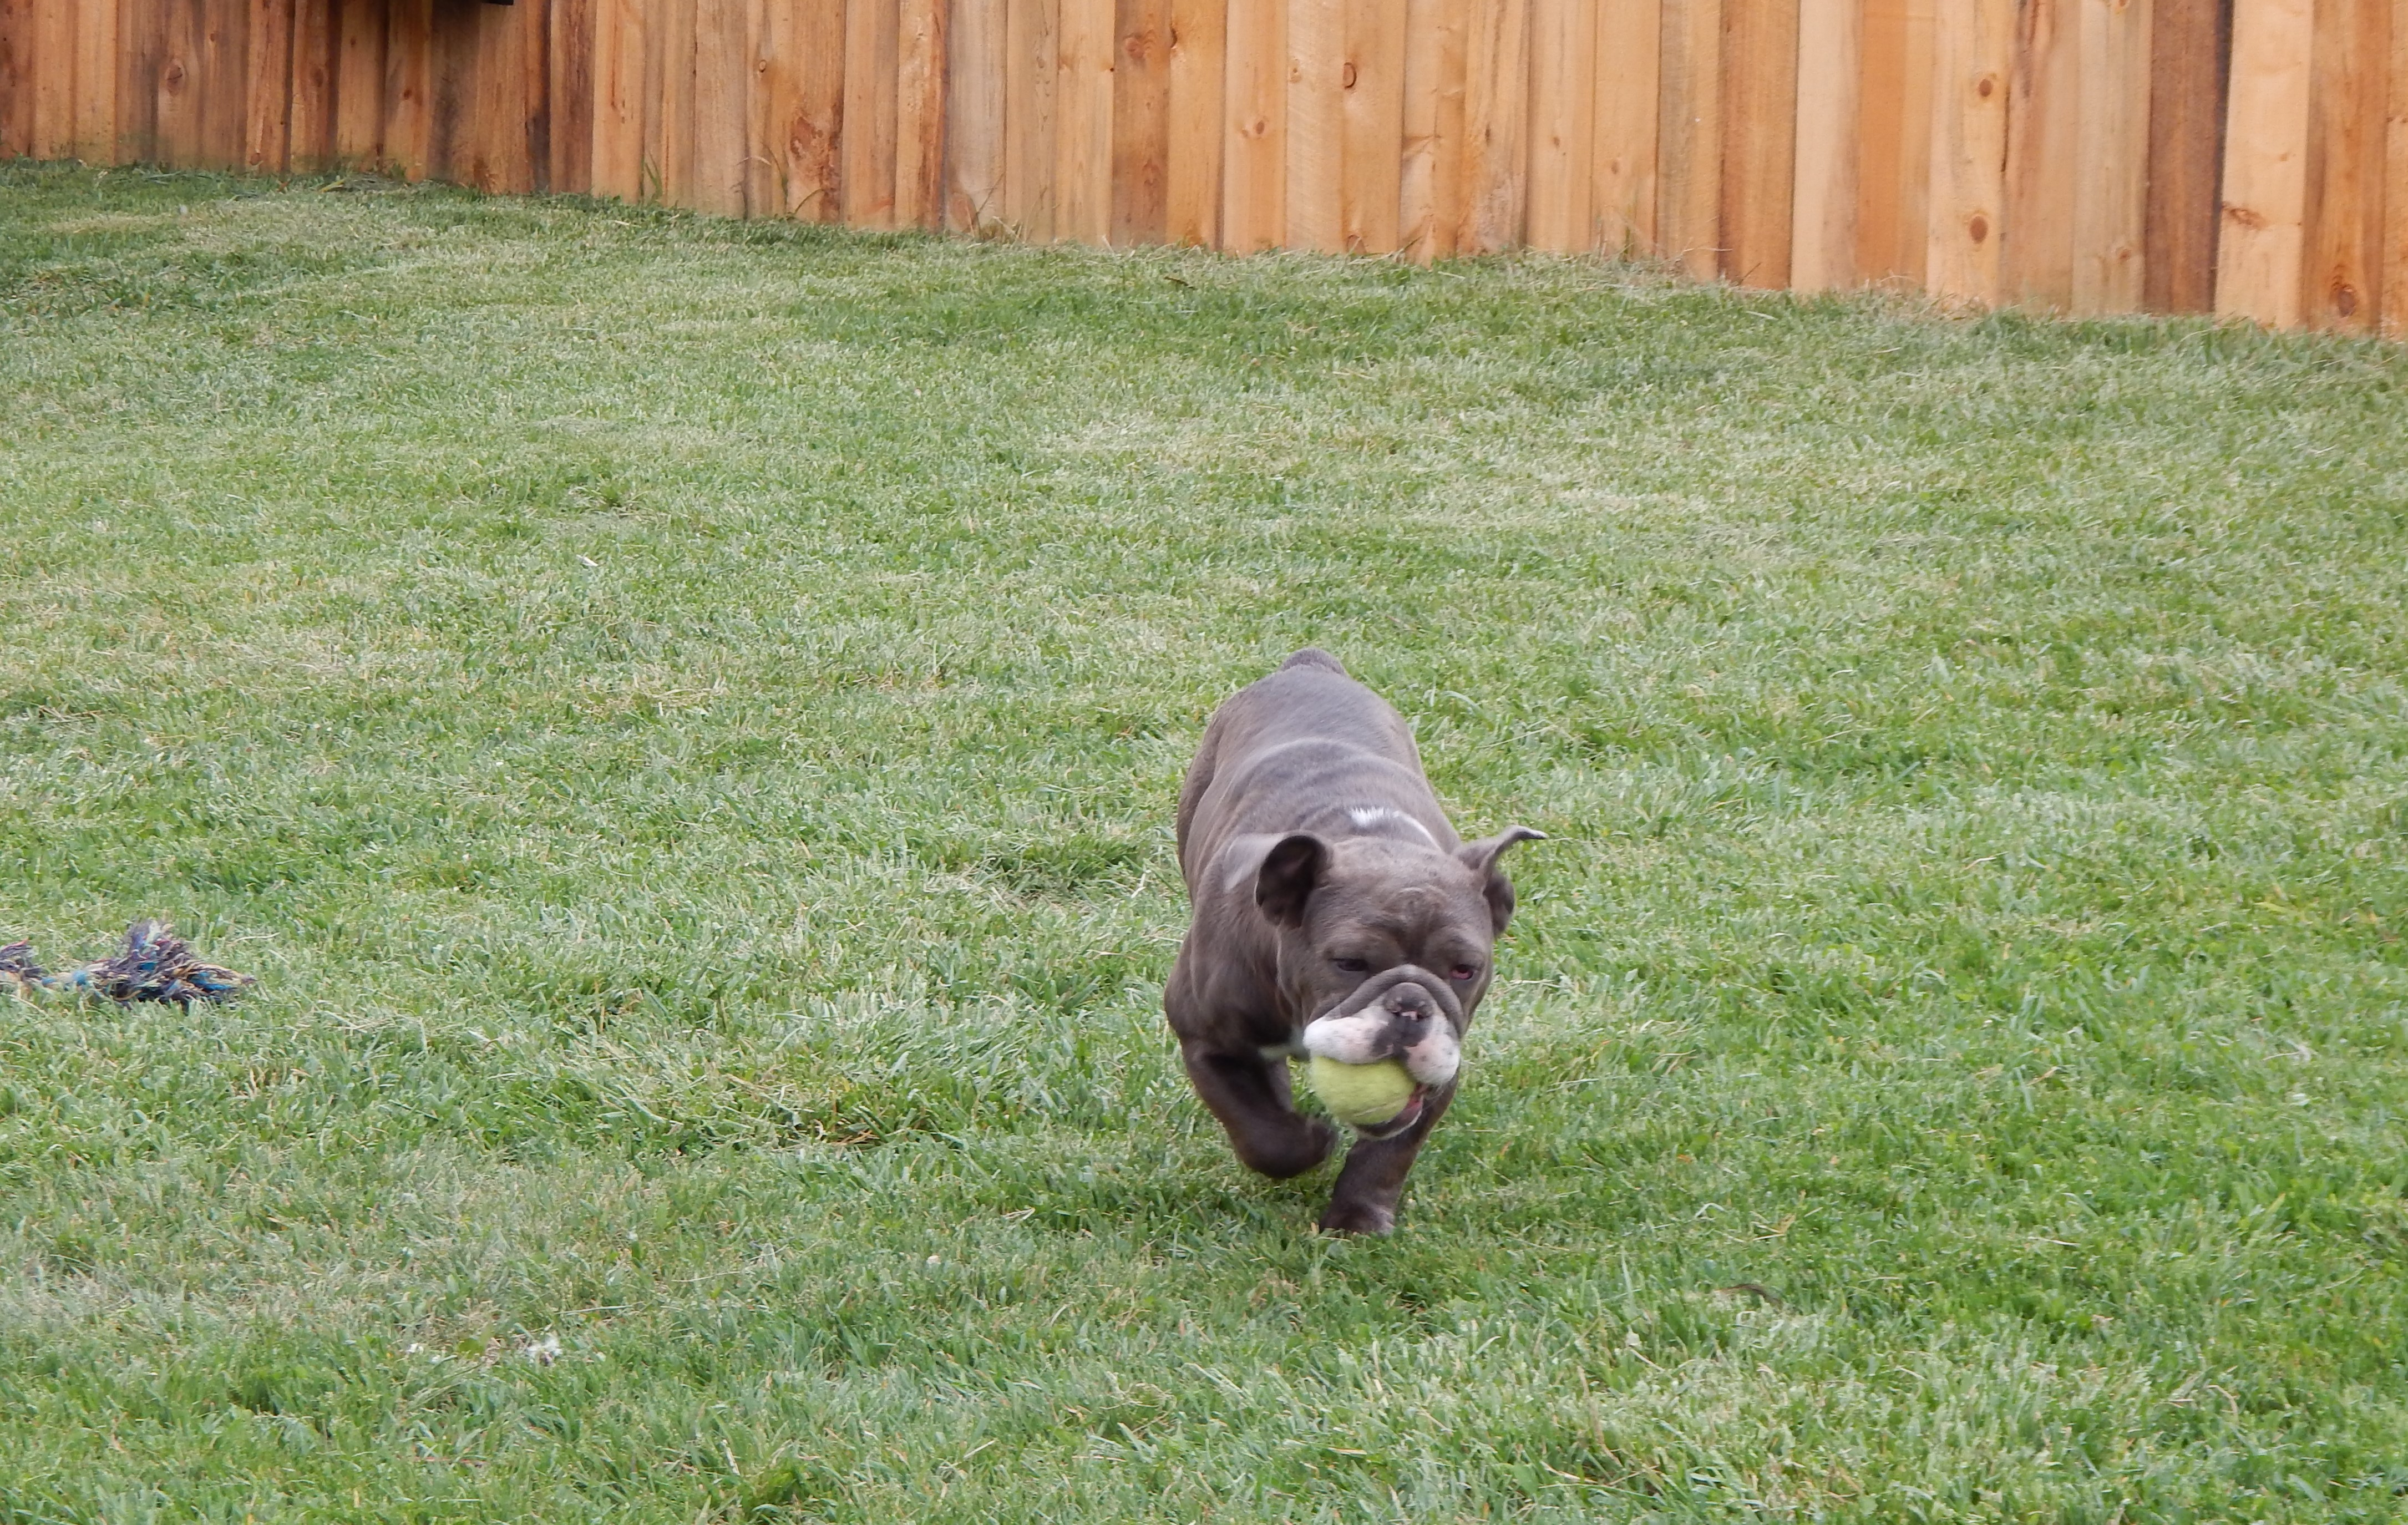 BULLDOGS CAN RUN FAST